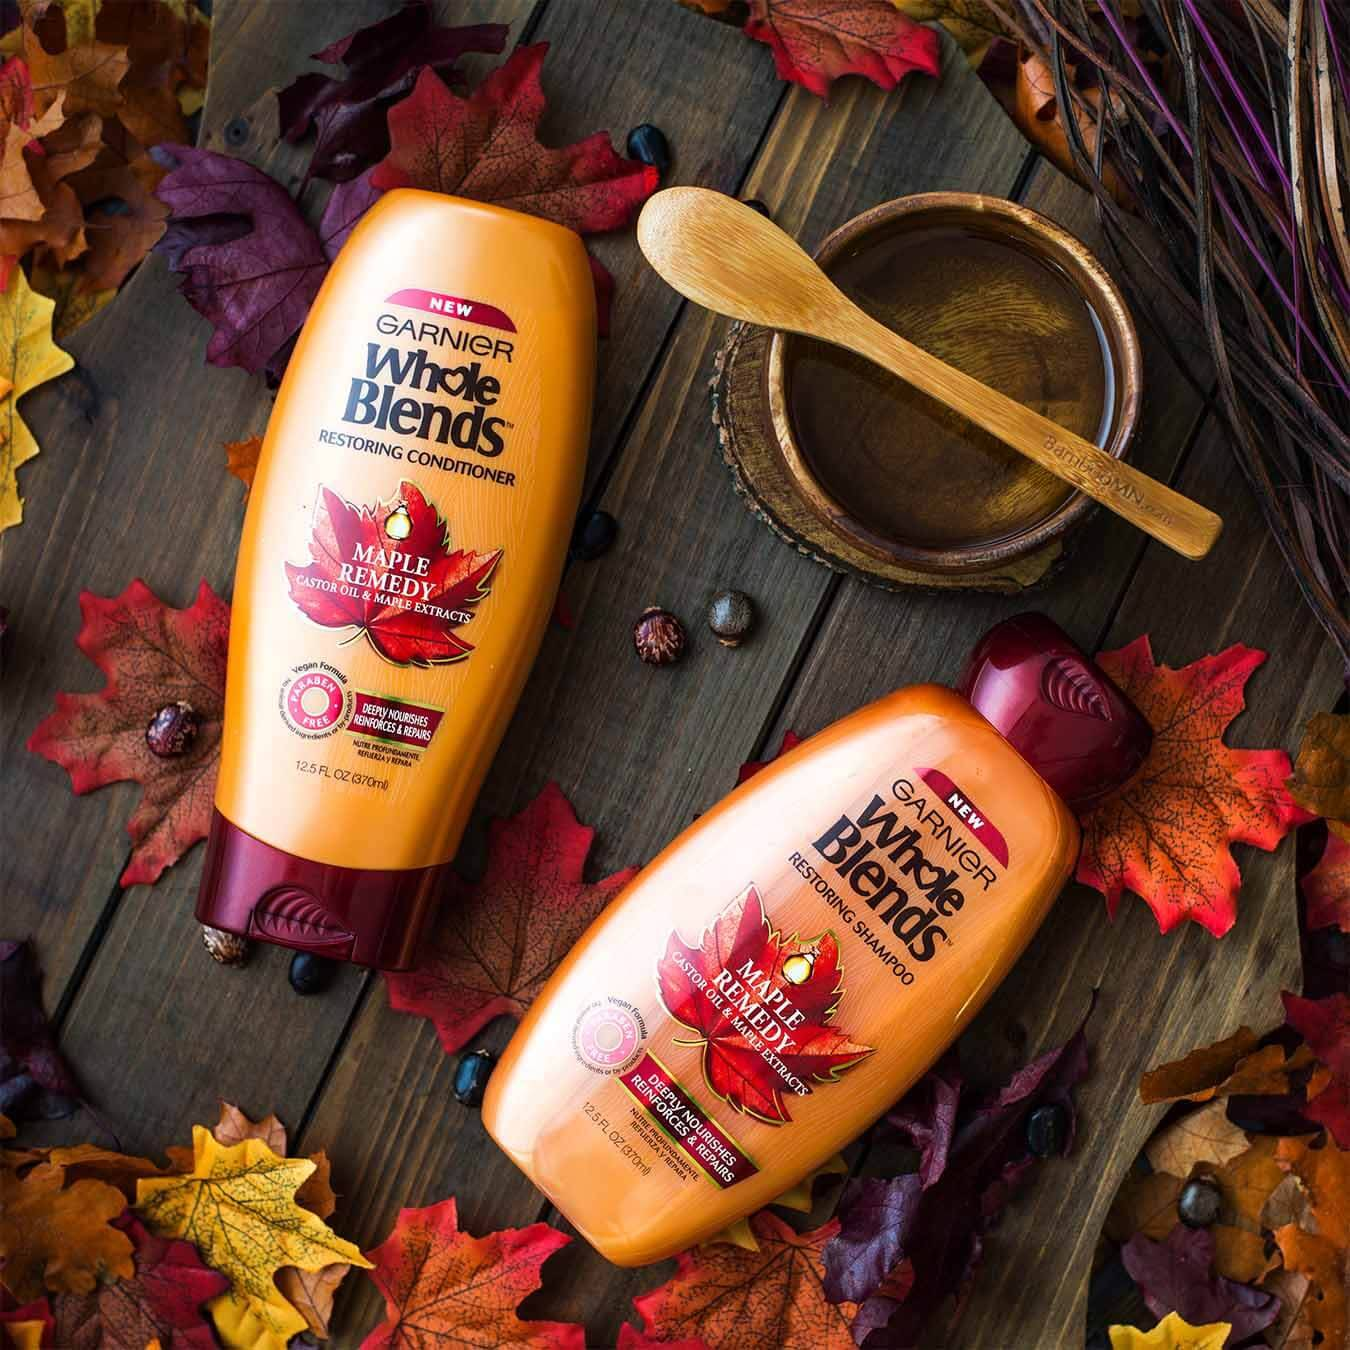 Whole Blends Maple Remedy Shampoo with Caster Oil and Maple Extracts and Maple Remedy Conditioner with Caster Oil and Maple Extracts next to a wooden bowl of maple syrup with a wooden spoon on top beside a woven tangle of branches and purple wires on a wooden table strewn with red, orange, and purple maple leaves and beads.